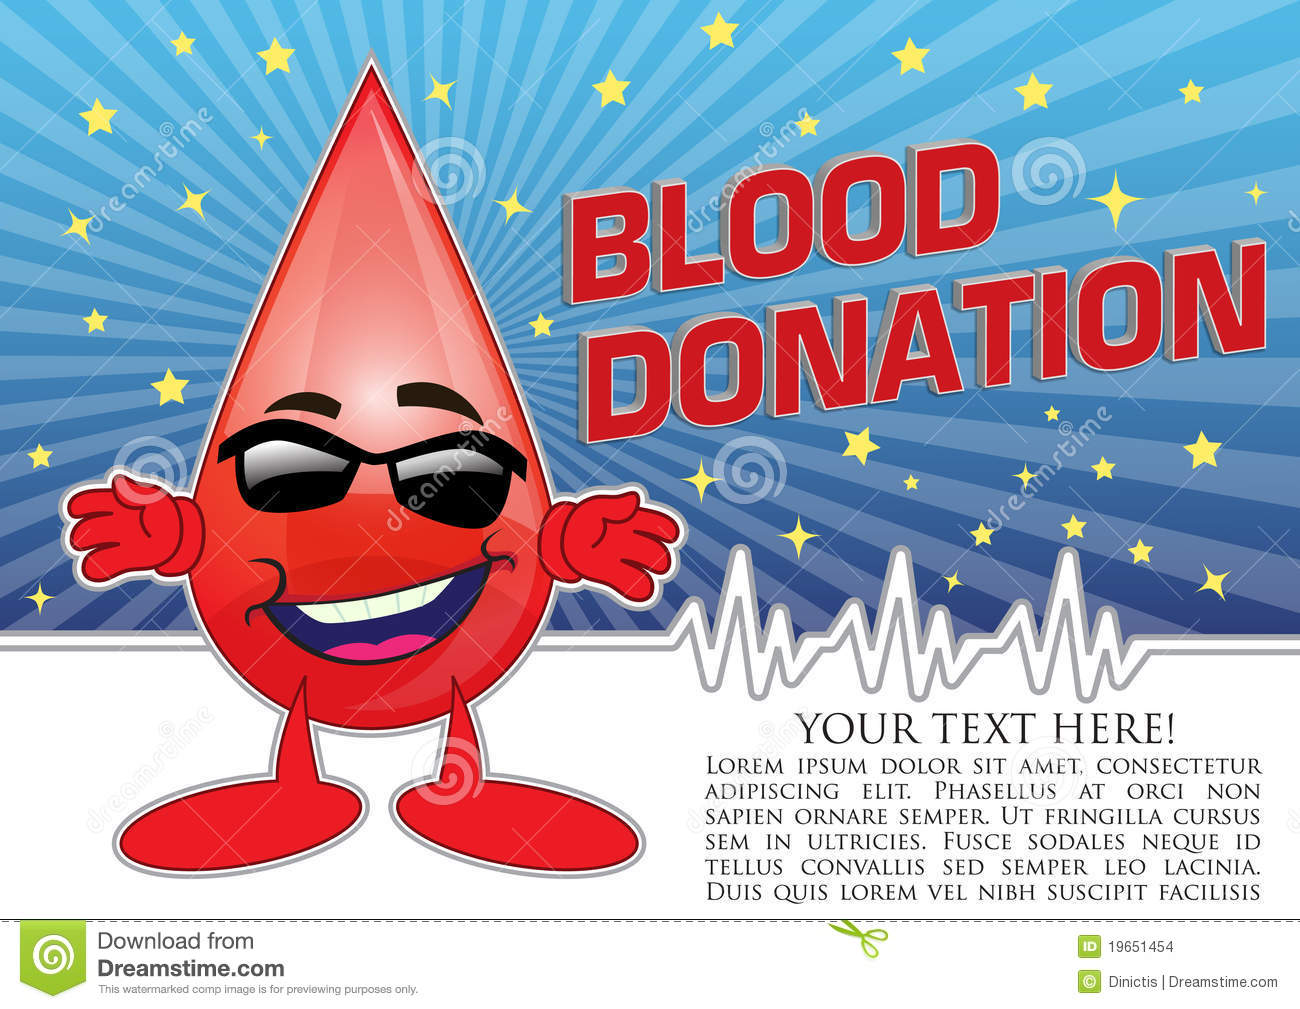 Blood donation poster concept illustration stock vector blood donation poster concept illustration thecheapjerseys Gallery